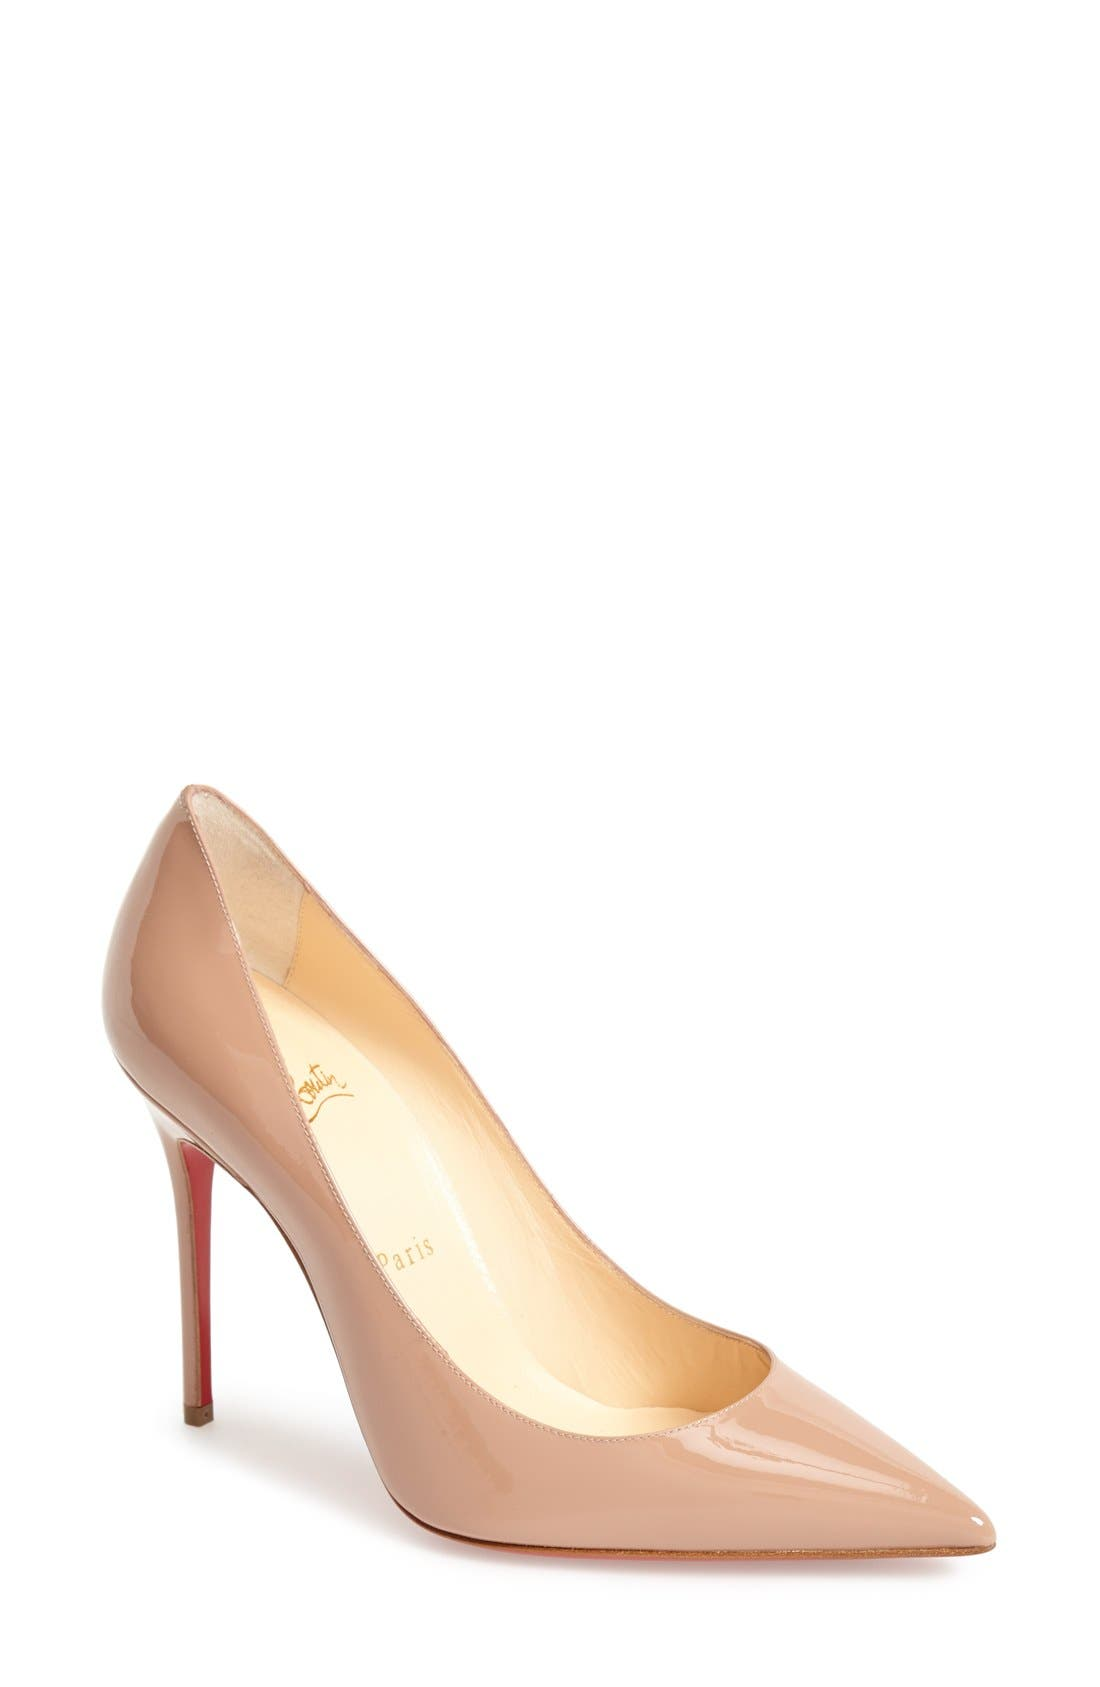 'decollete' Pointy Toe Pump by Christian Louboutin